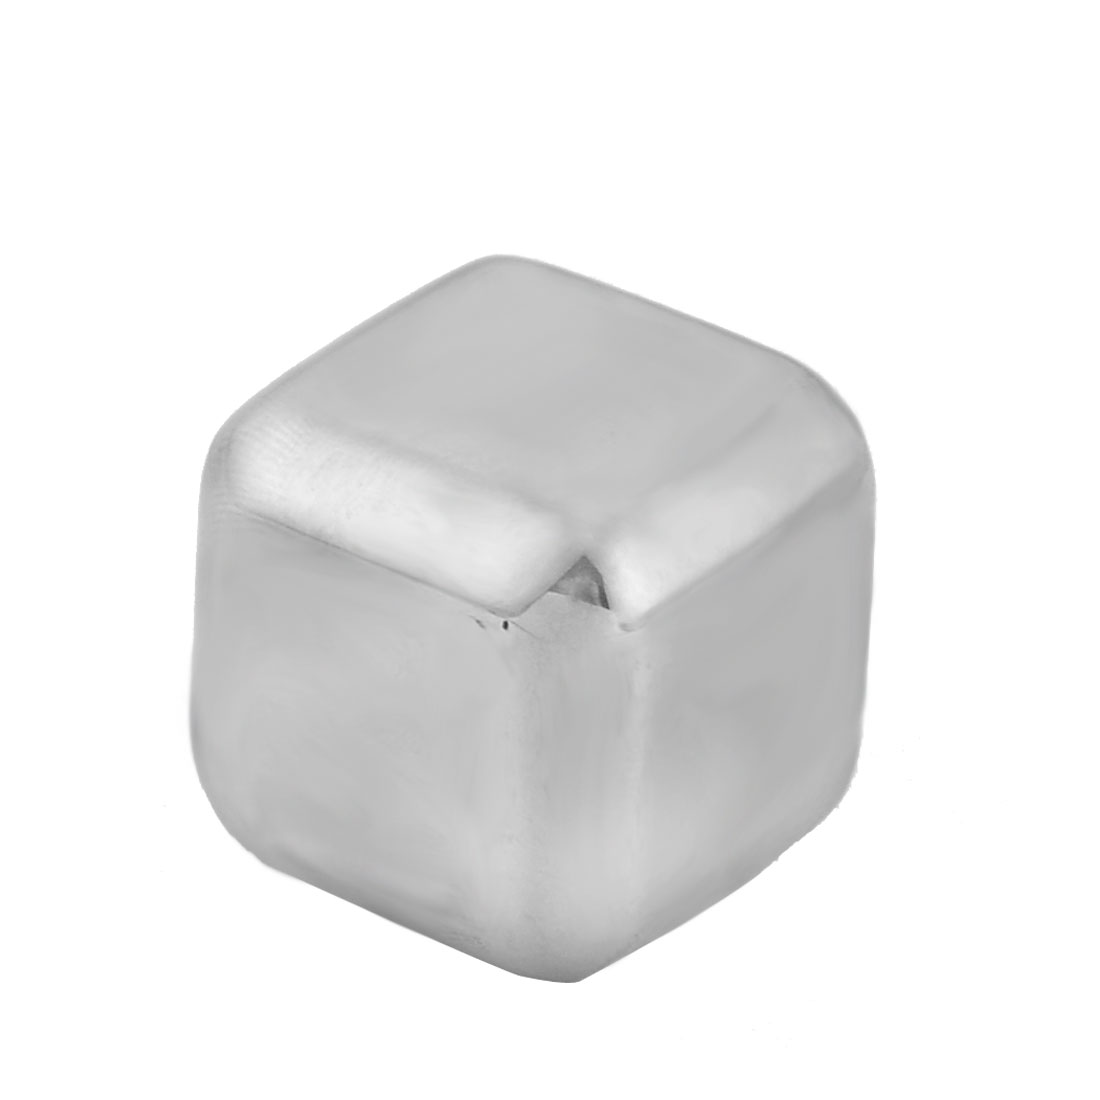 Home Stainless Steel Cubic Shaped Soda Juice Physical Cooling Ice Cube Silver Tone